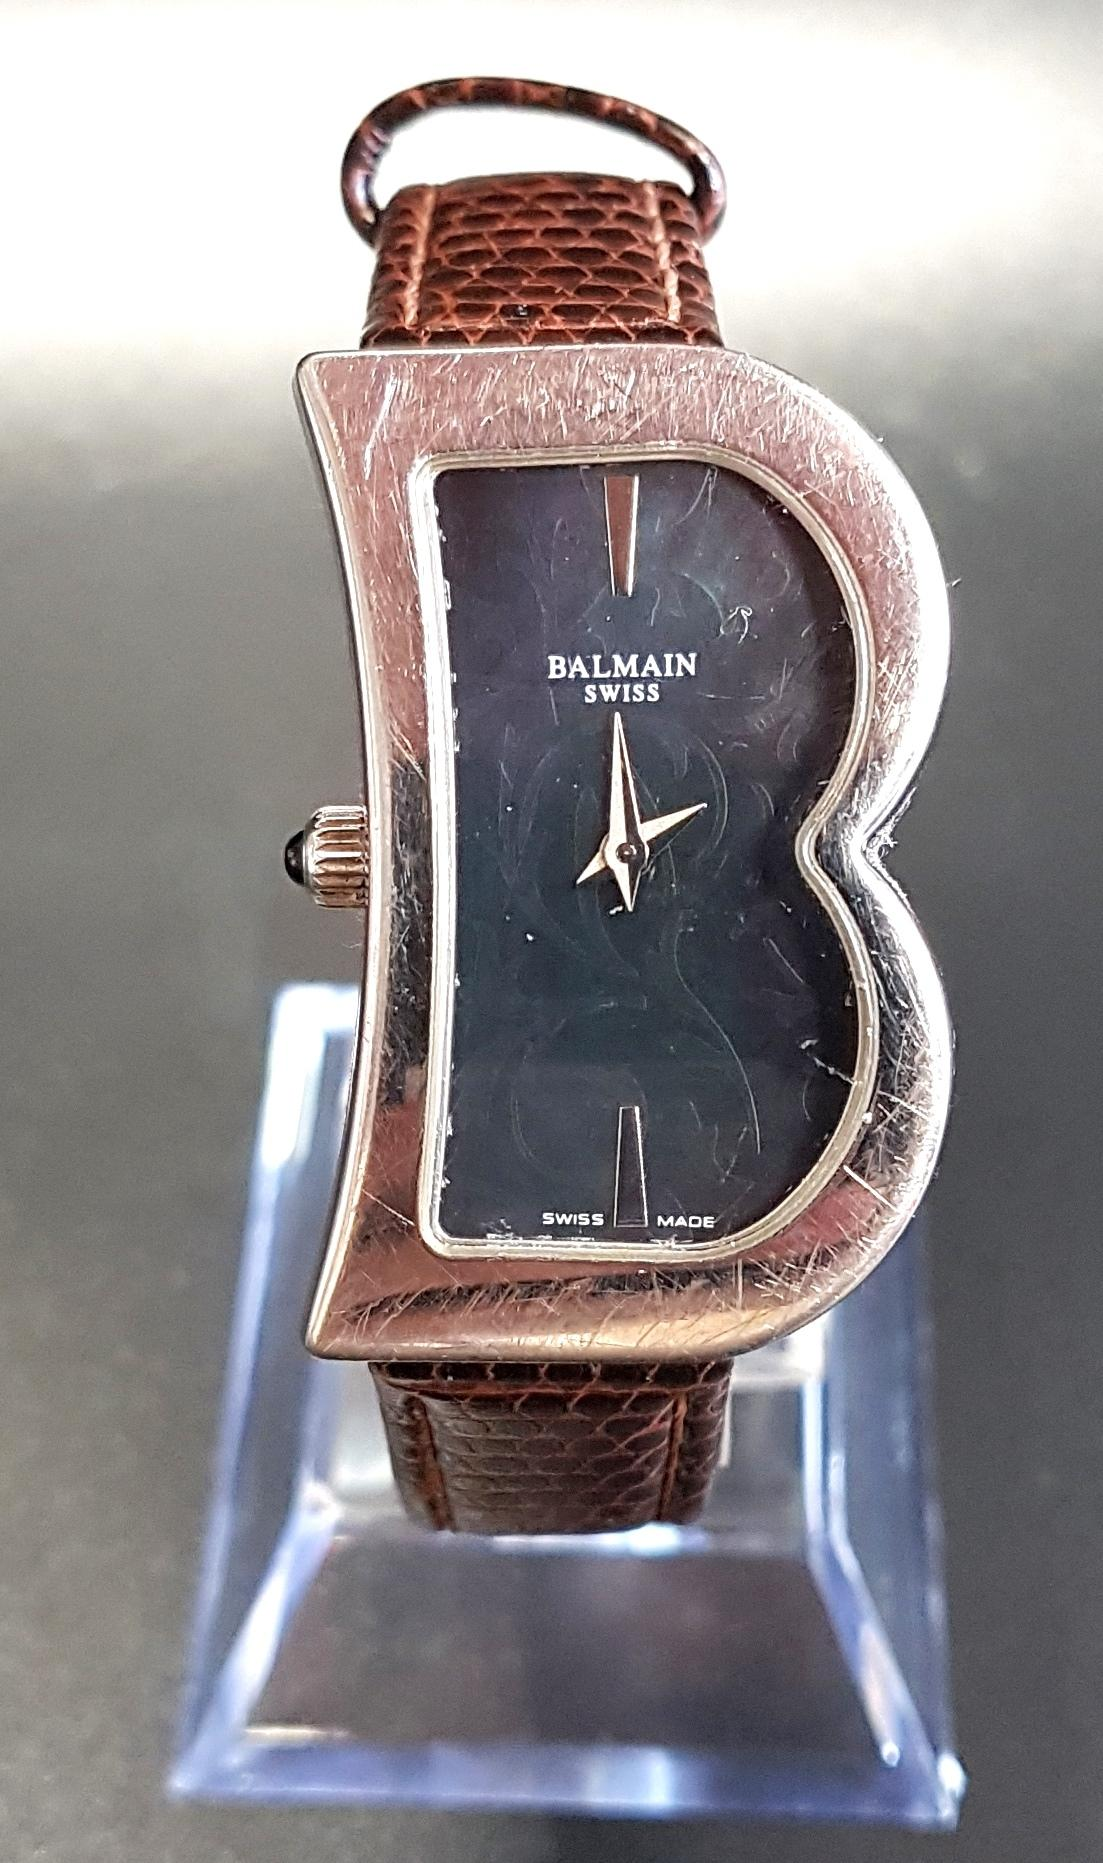 Lot 86 - LADIES PIERRE BALMAIN WRISTWATCH the black B shaped dial with scroll detail and baton markers at 6